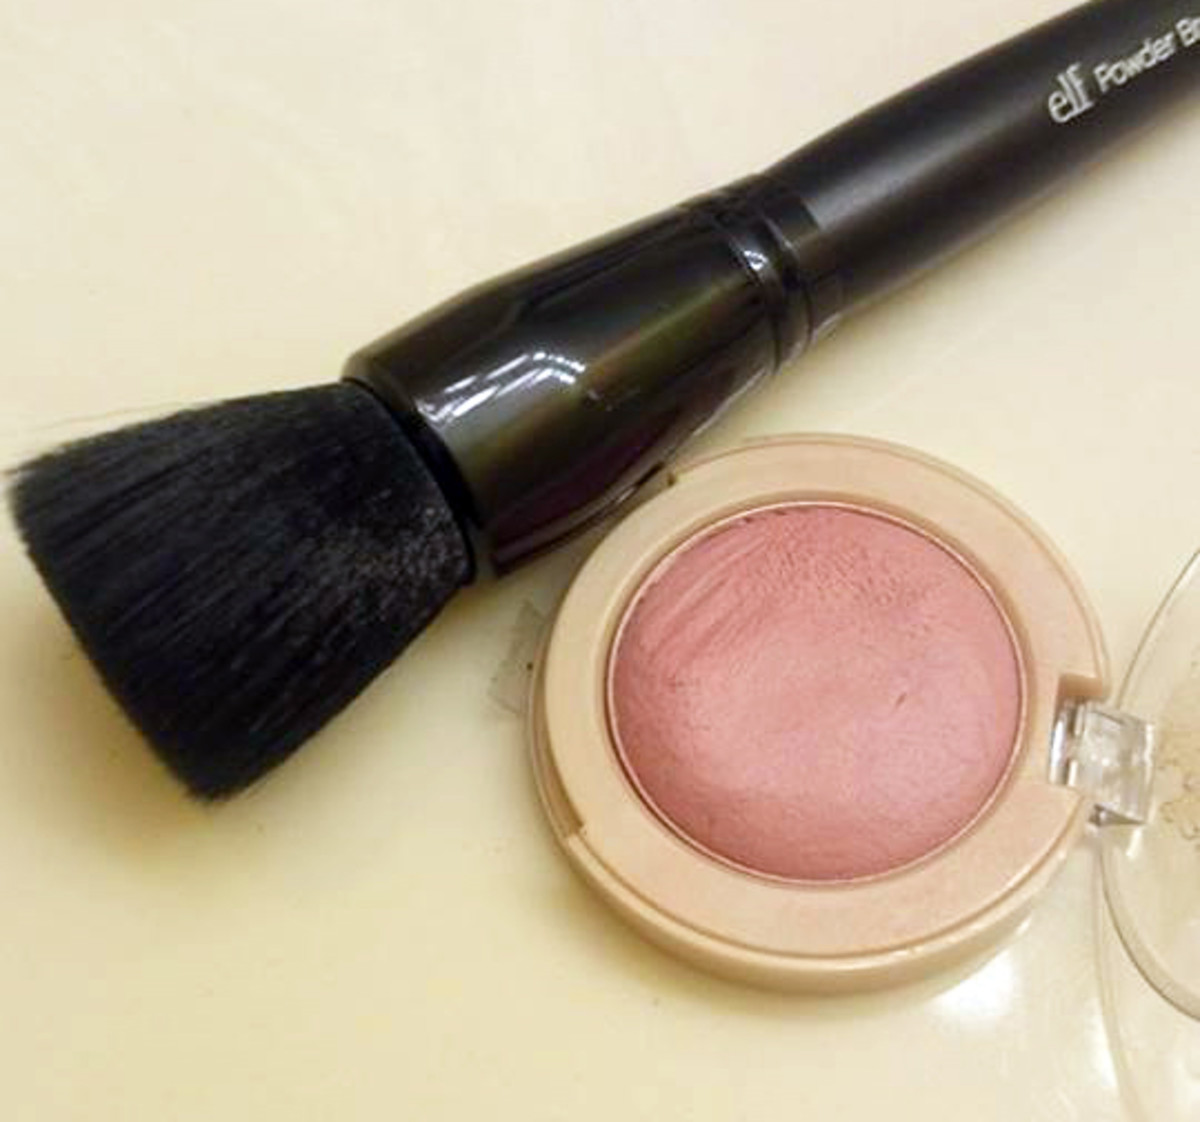 Use a synthetic brush to blend out any cream blushes such as Maybelline's Bouncy blushes.